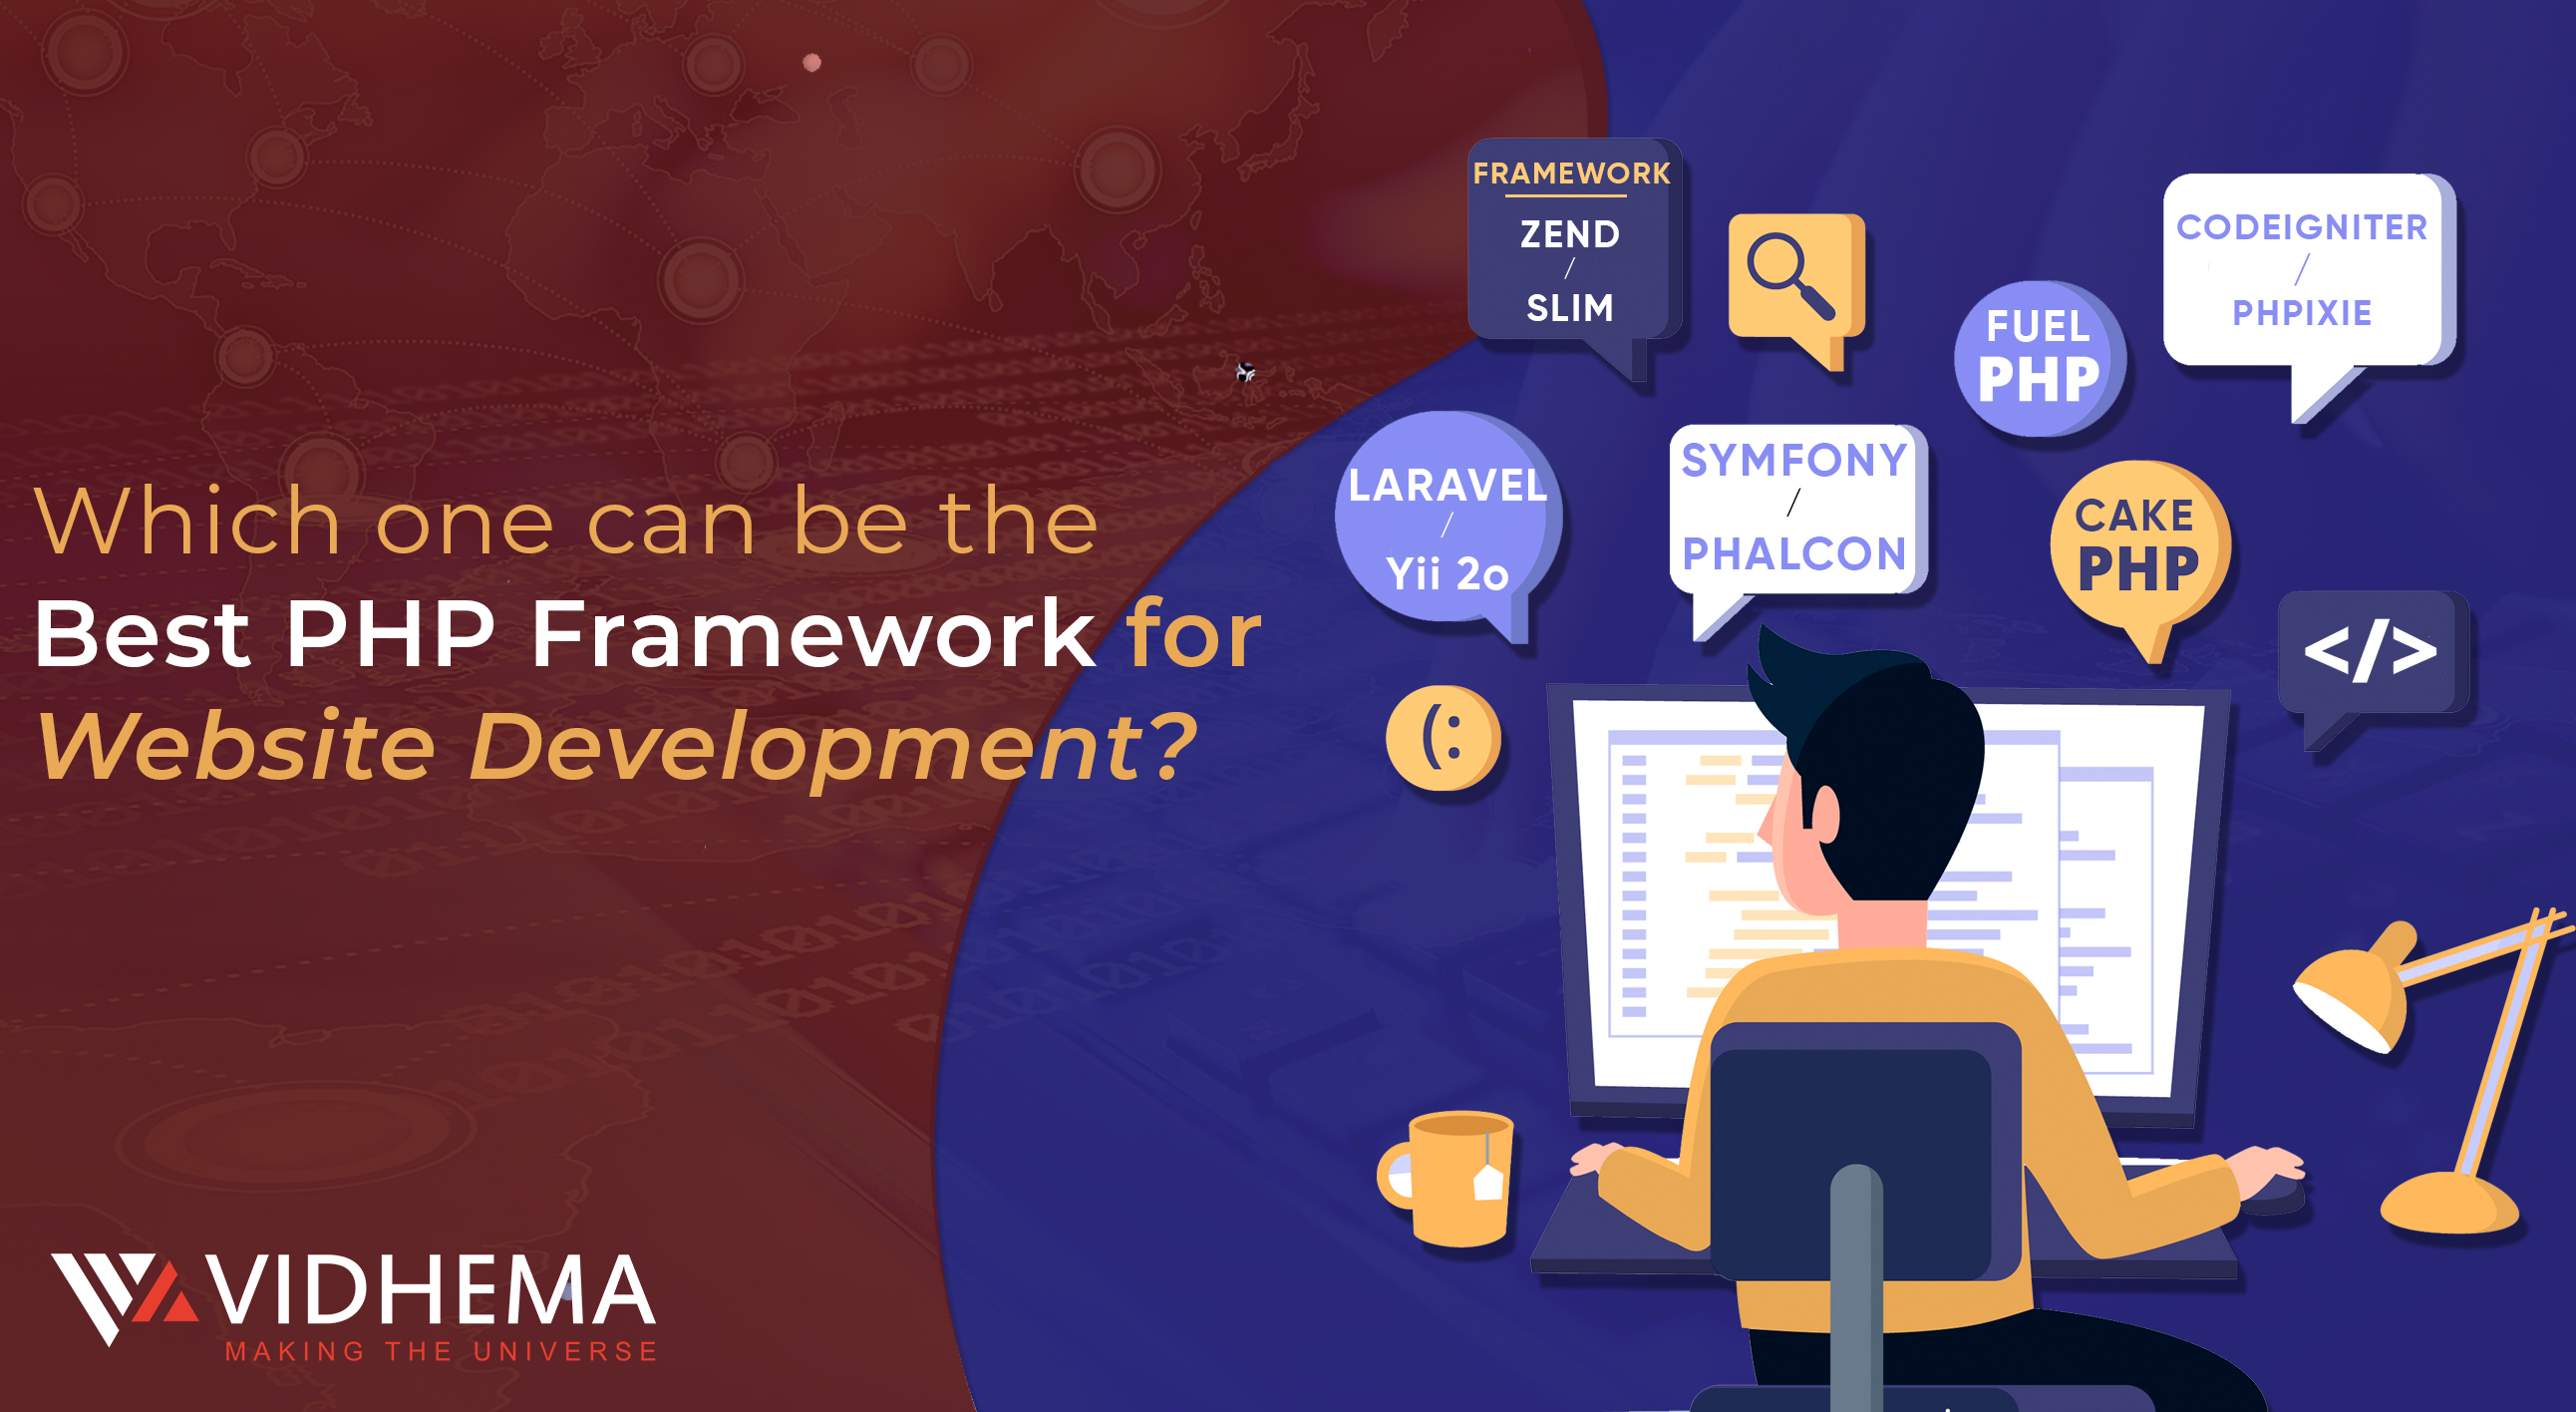 Which one can be the Best PHP Framework for Website Development?